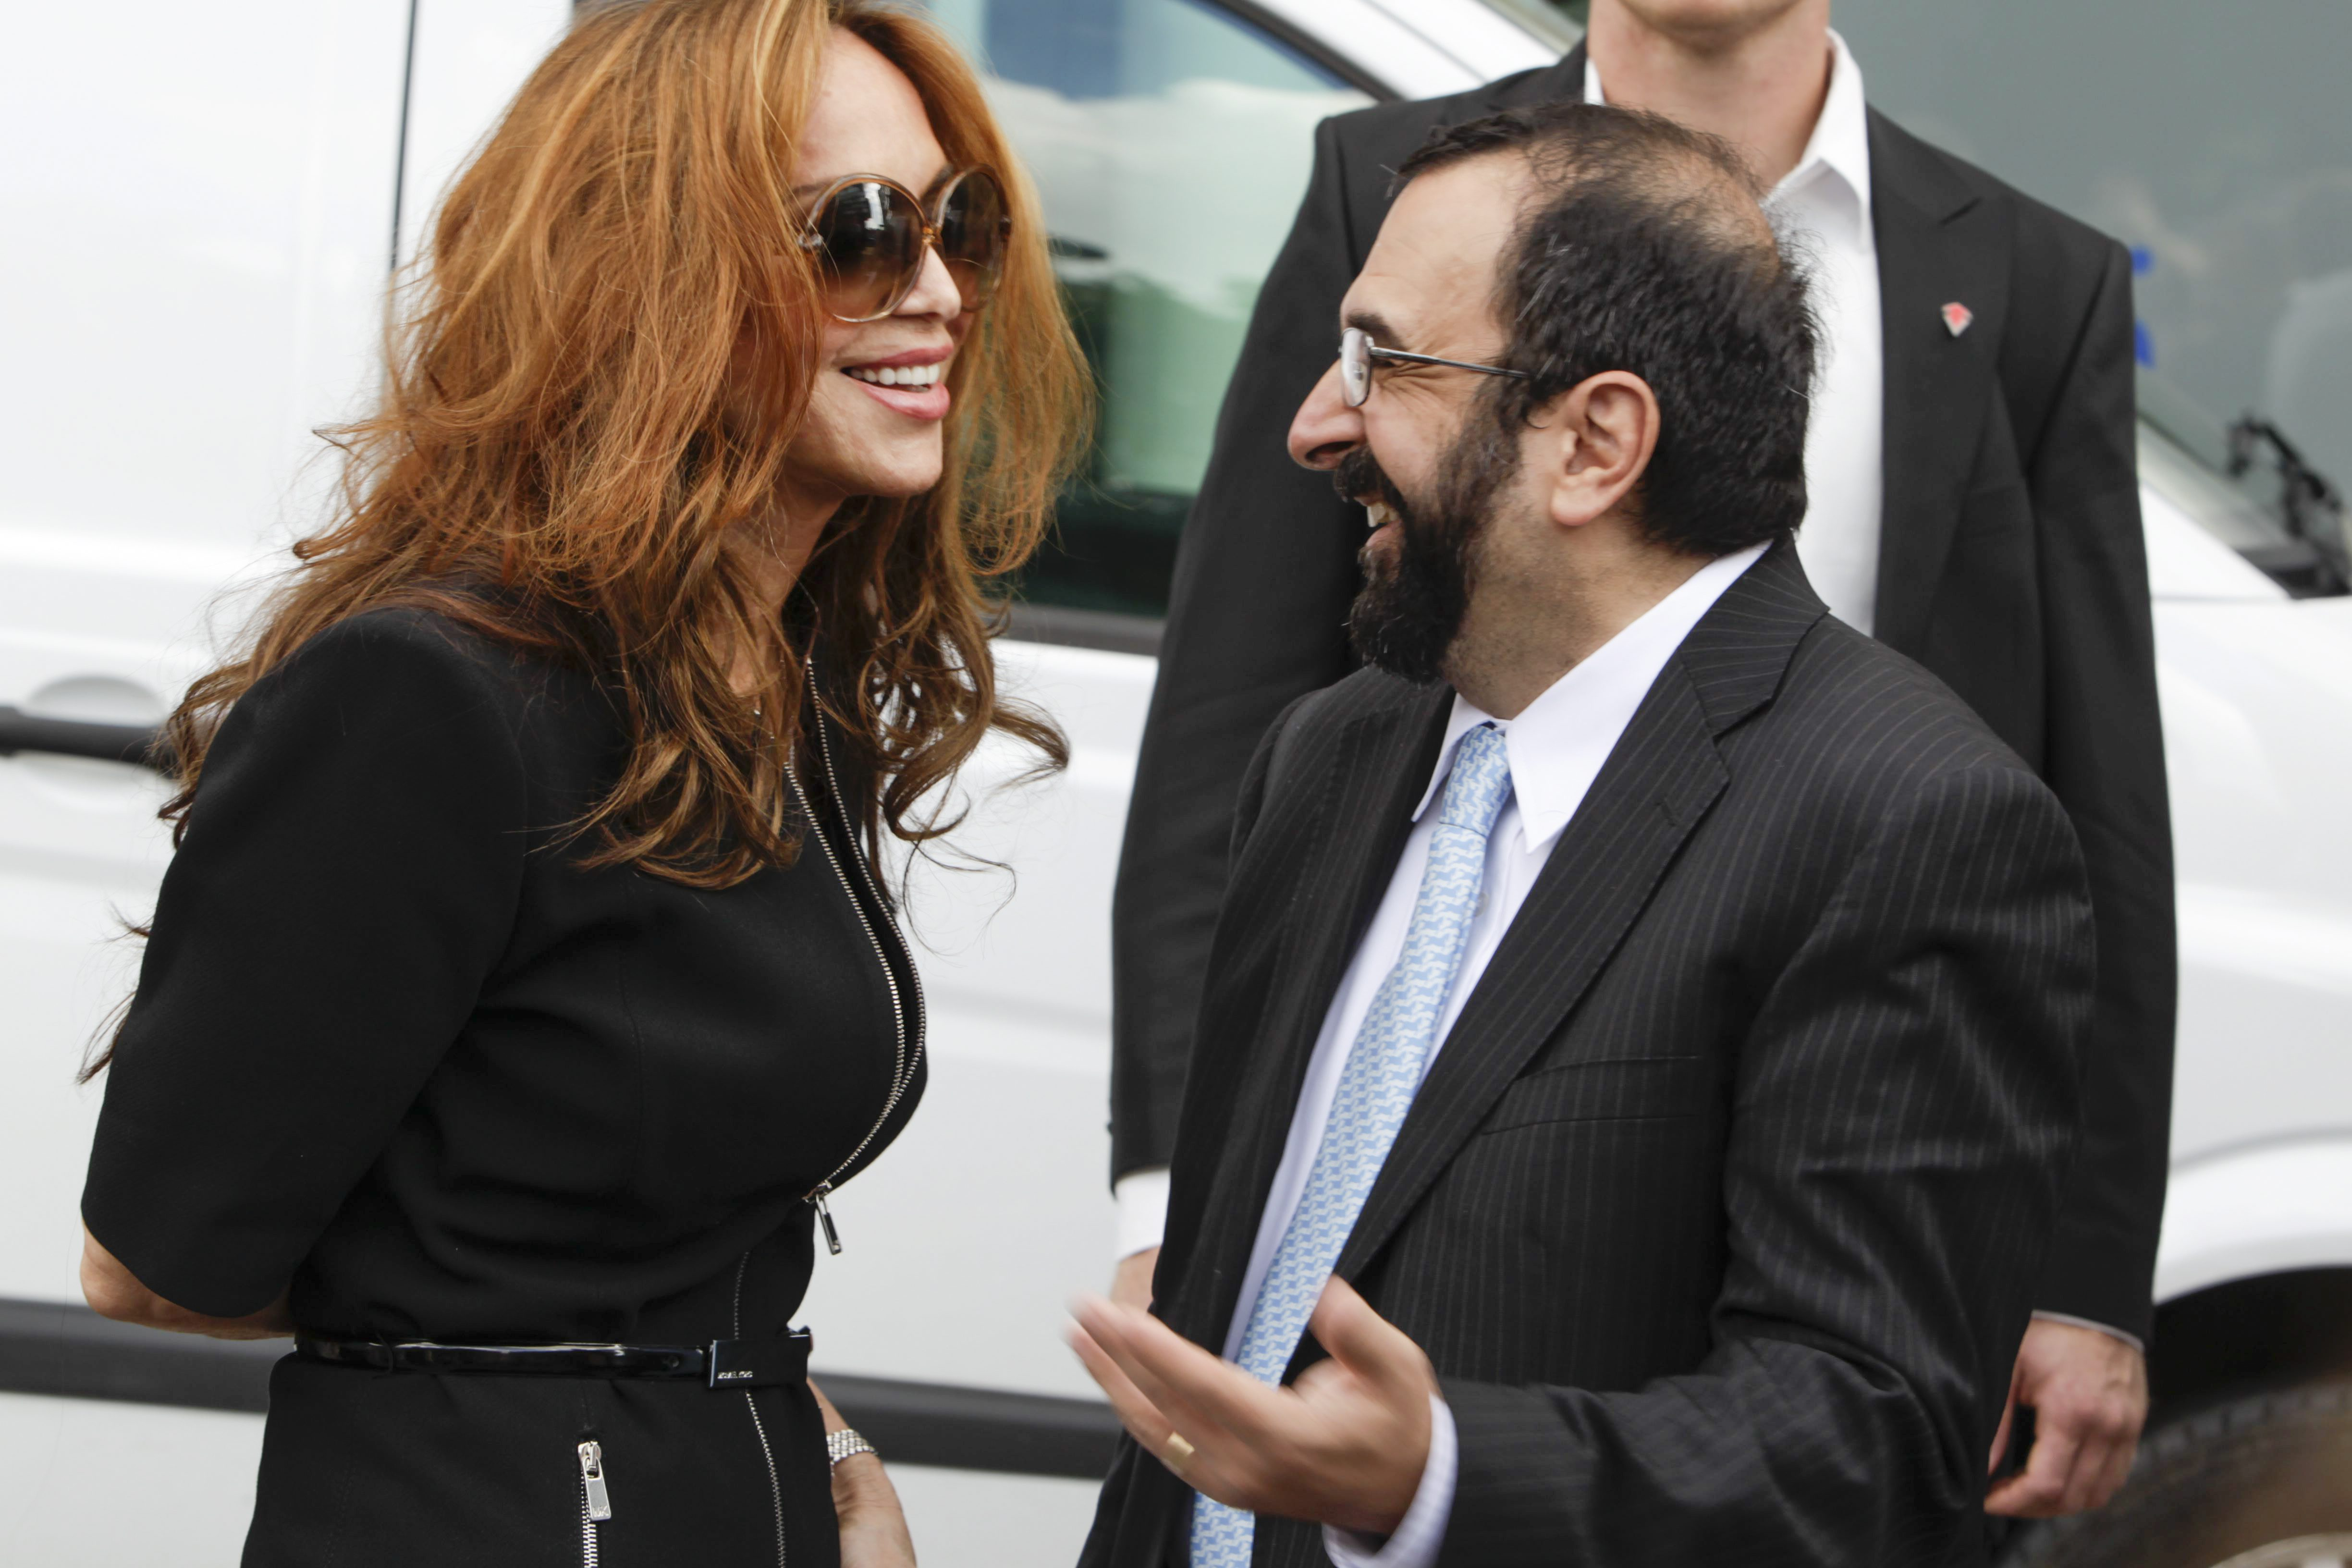 Pamela Geller, left, and Robert Spencer at an anti-Islam event in  Sweden in 2012. (Getty)